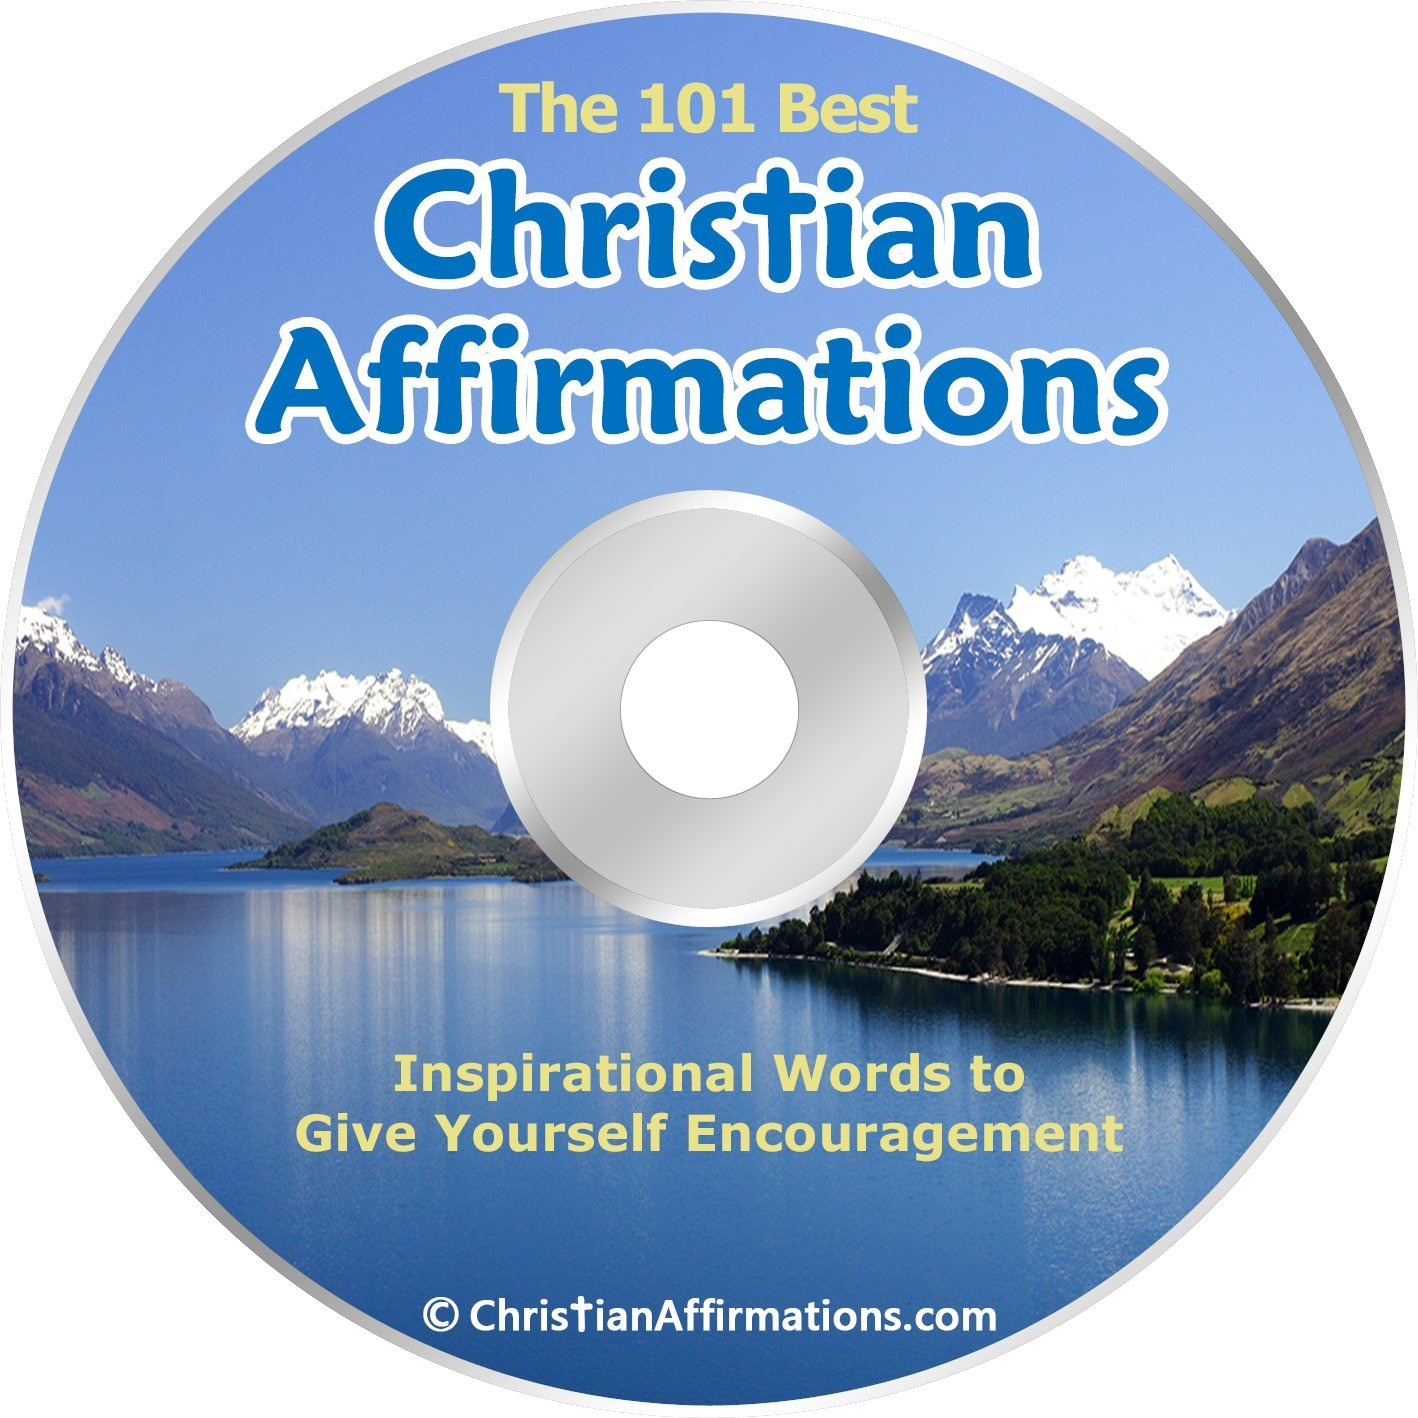 The 101 Best Christian Affirmations - Speak God's Word, and